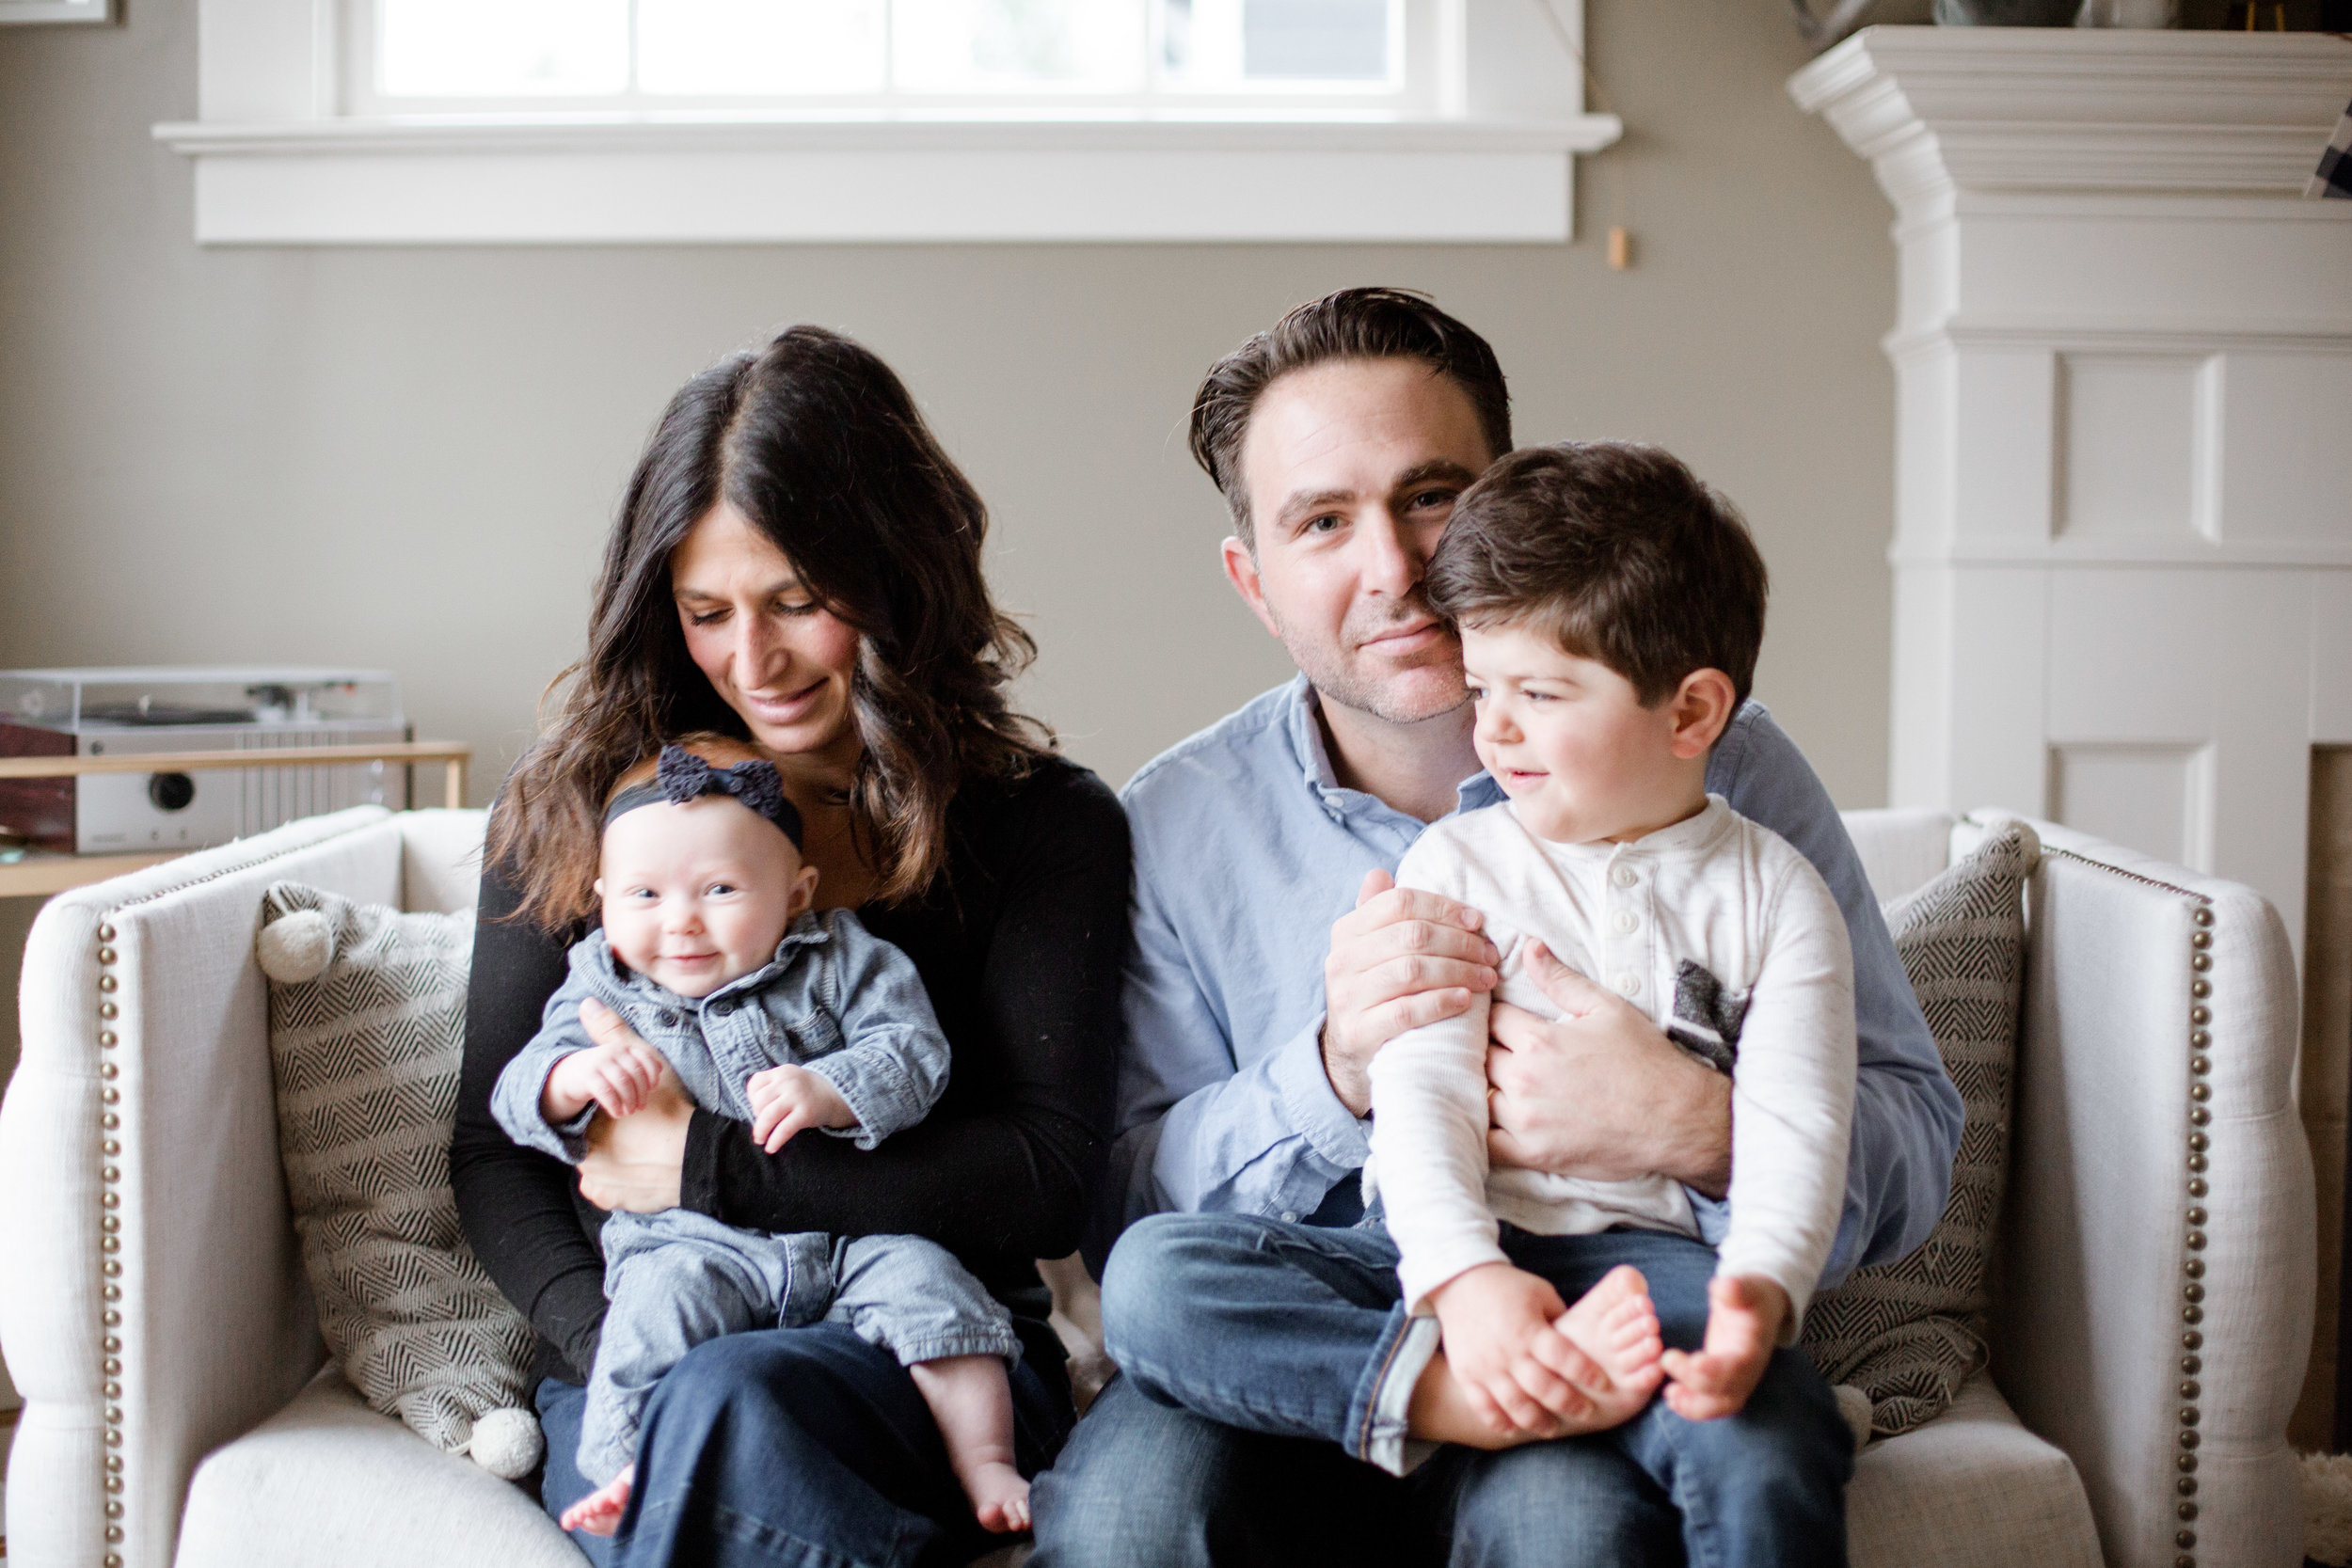 CohenFamily_Preview-3.jpg